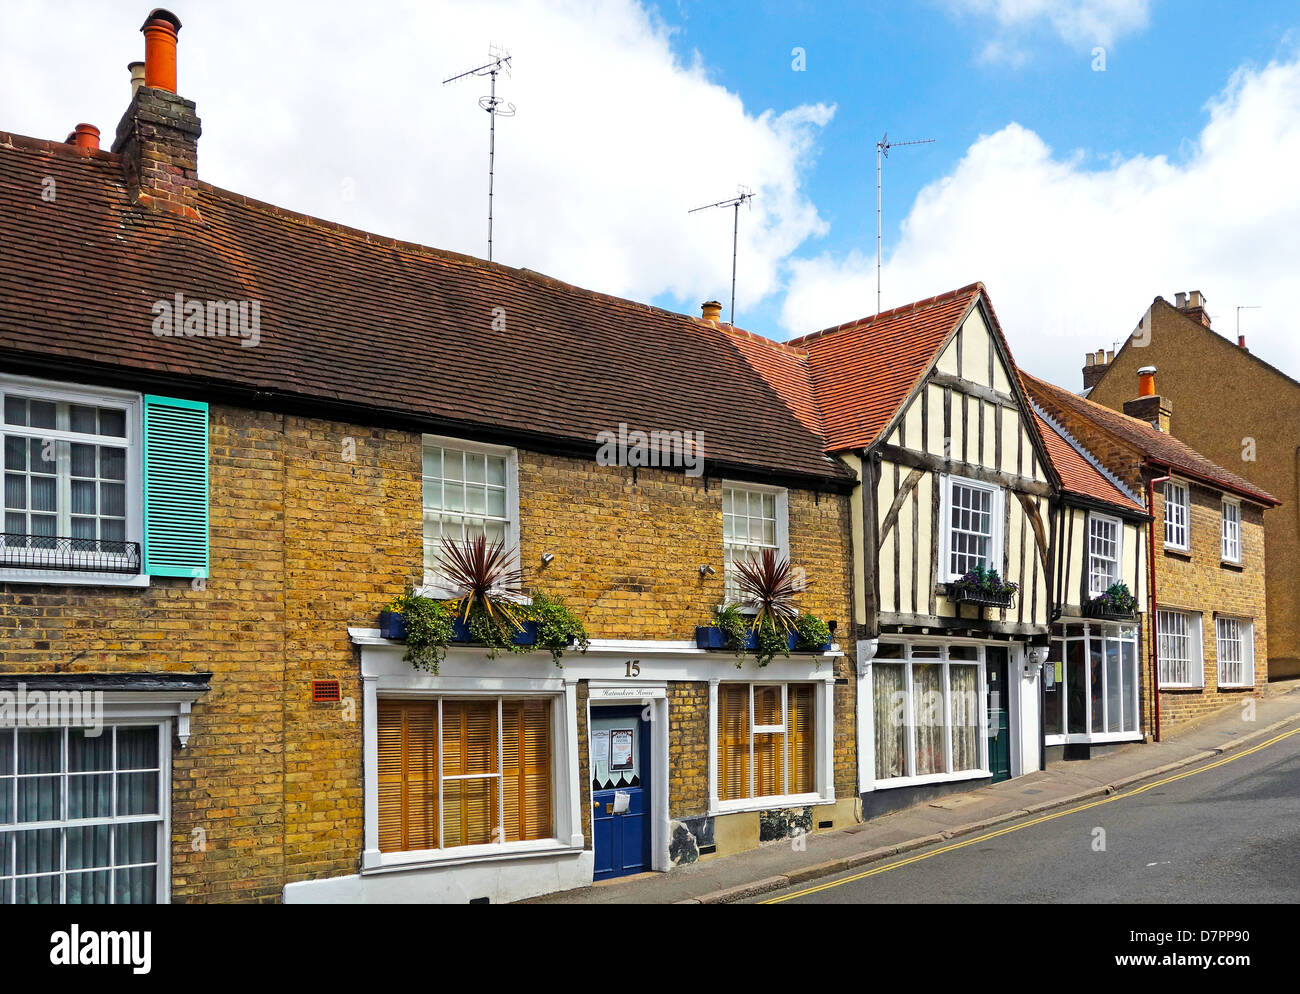 Cottages, Harrow on the Hill, London, UK - Stock Image